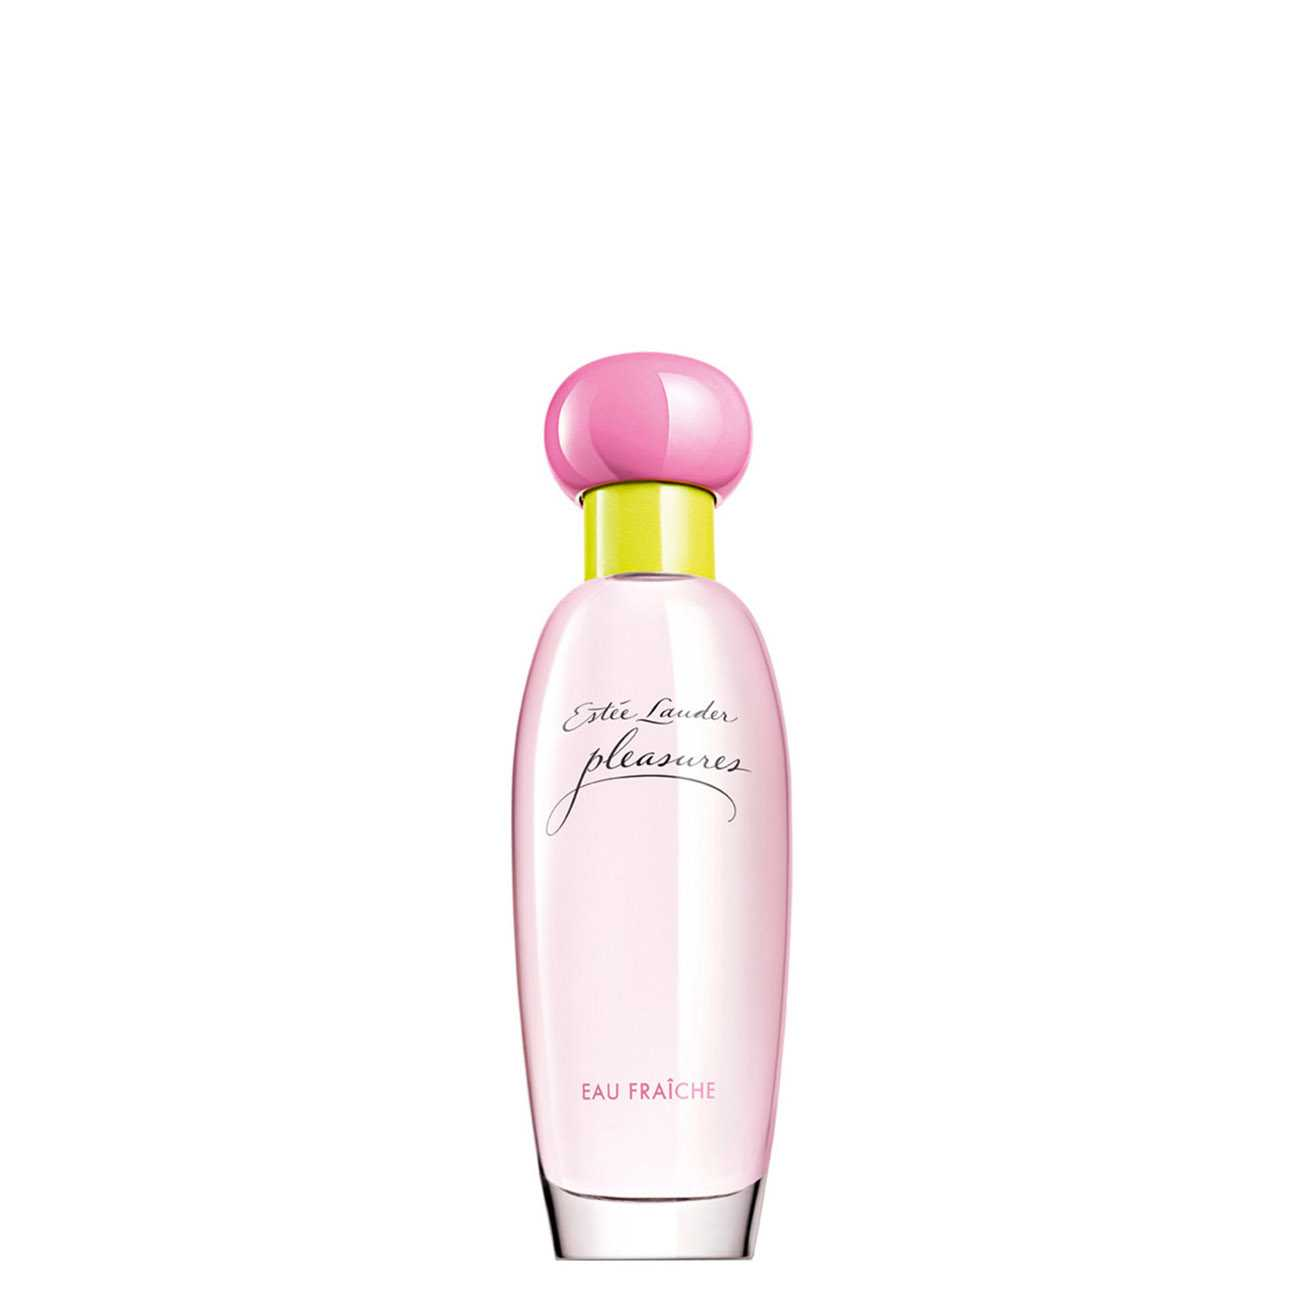 Pleasures Eau Fraiche 50 Ml 50ml Estée Lauder imagine 2021 bestvalue.eu